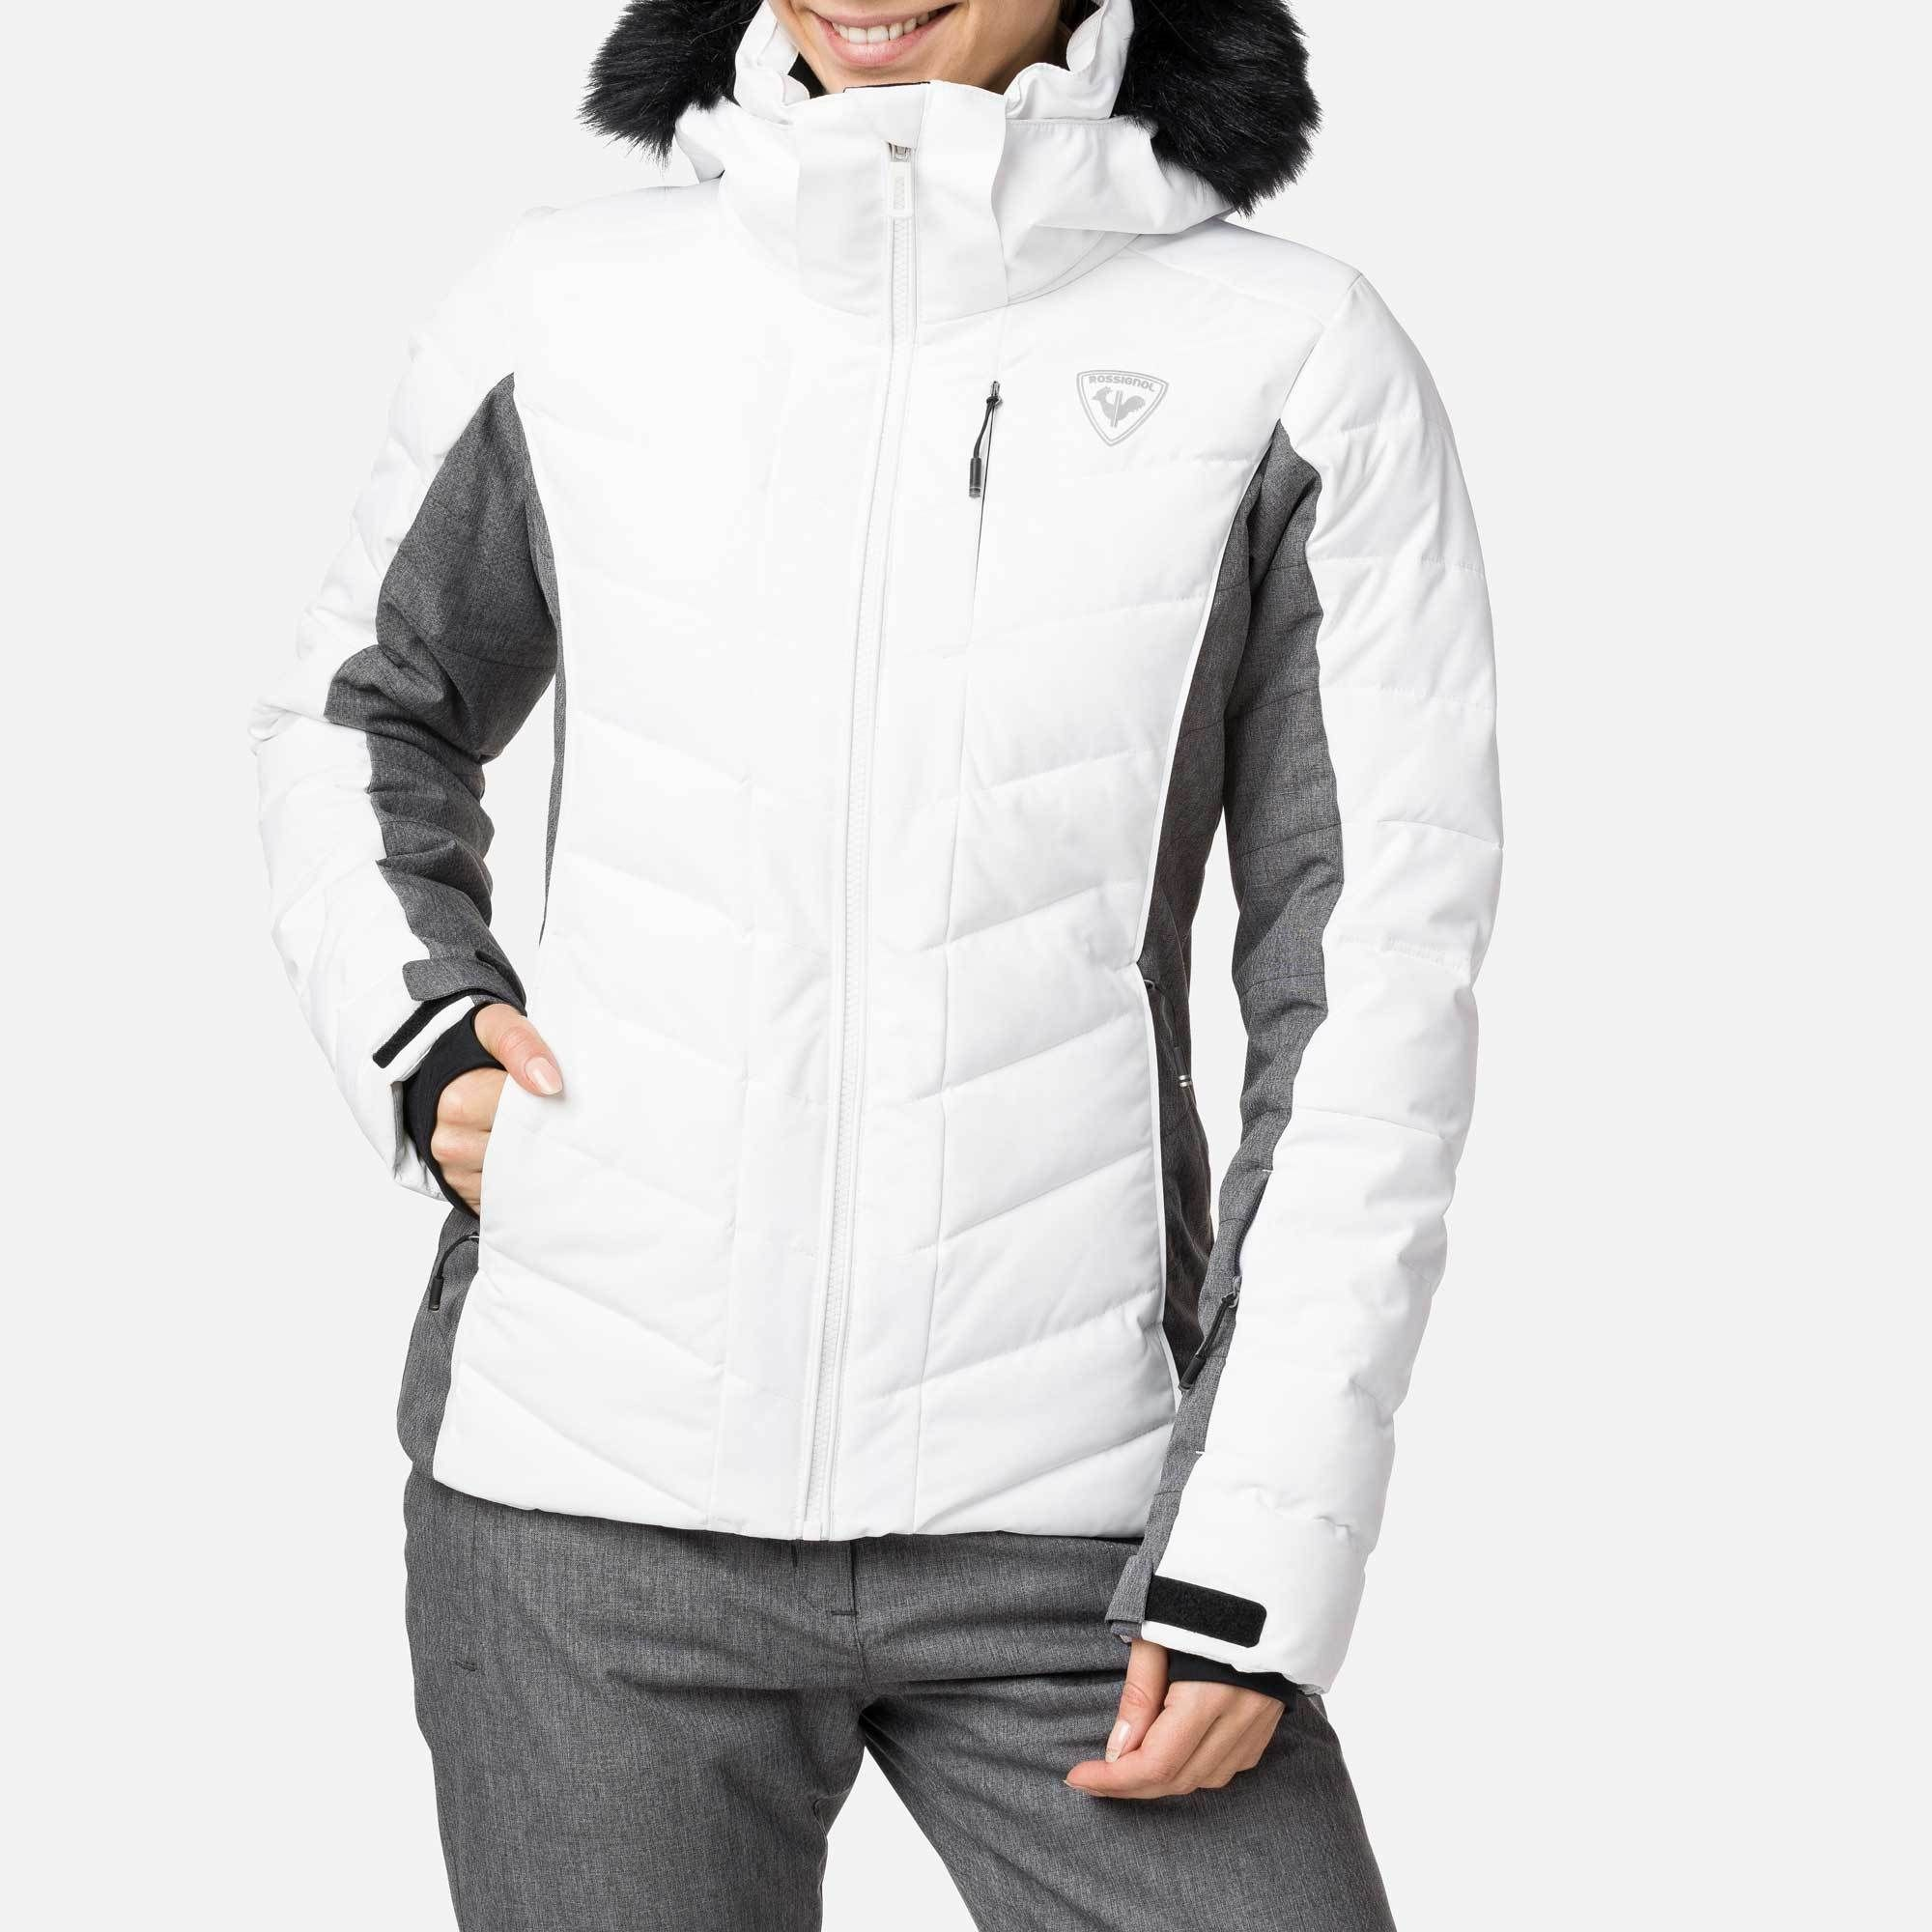 Giacca sci ROSSIGNOL donna